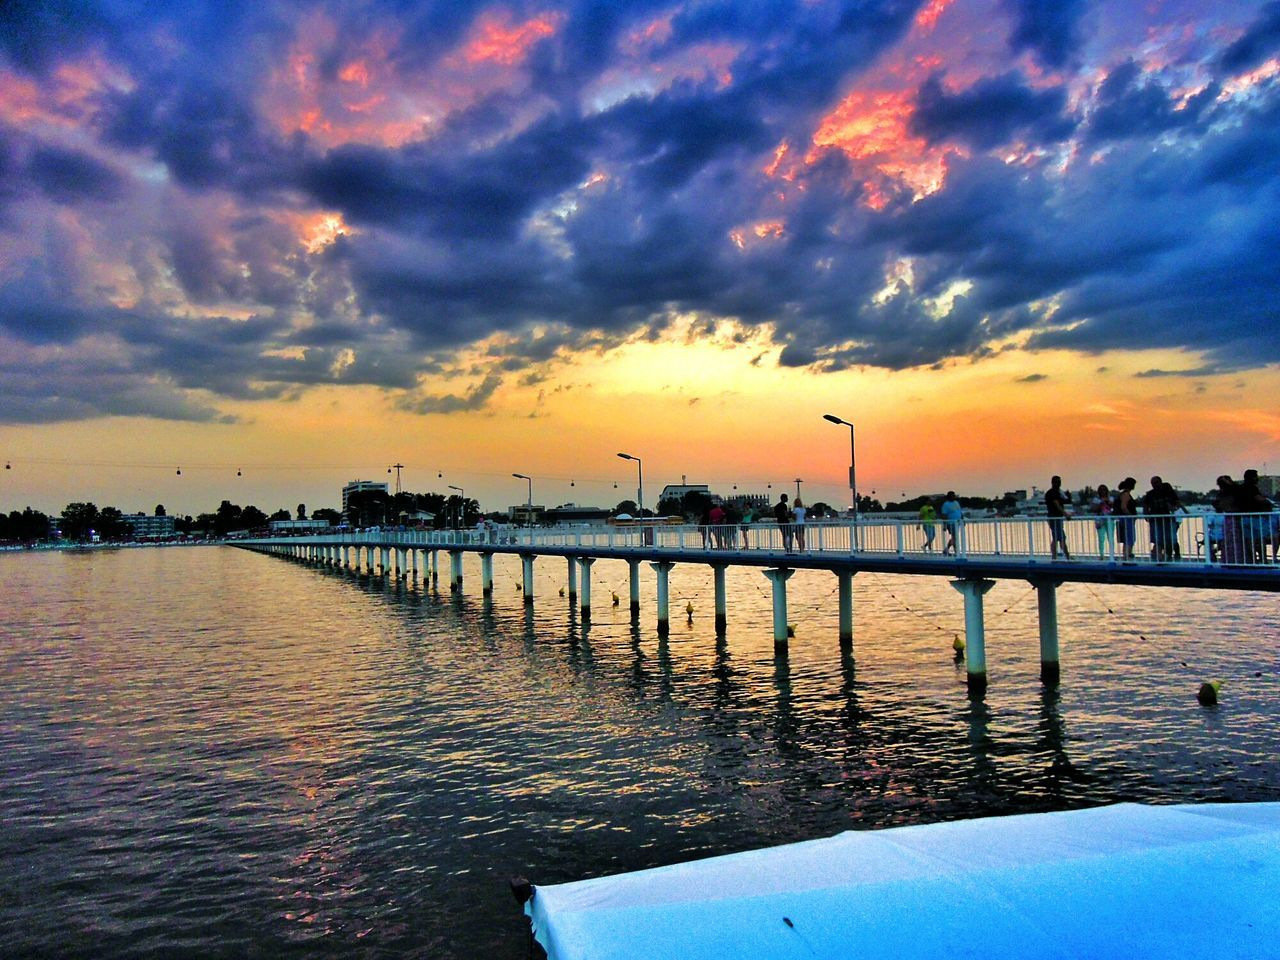 sunset, sky, water, reflection, cloud - sky, architecture, built structure, river, no people, nature, waterfront, building exterior, outdoors, beauty in nature, scenics, city, day